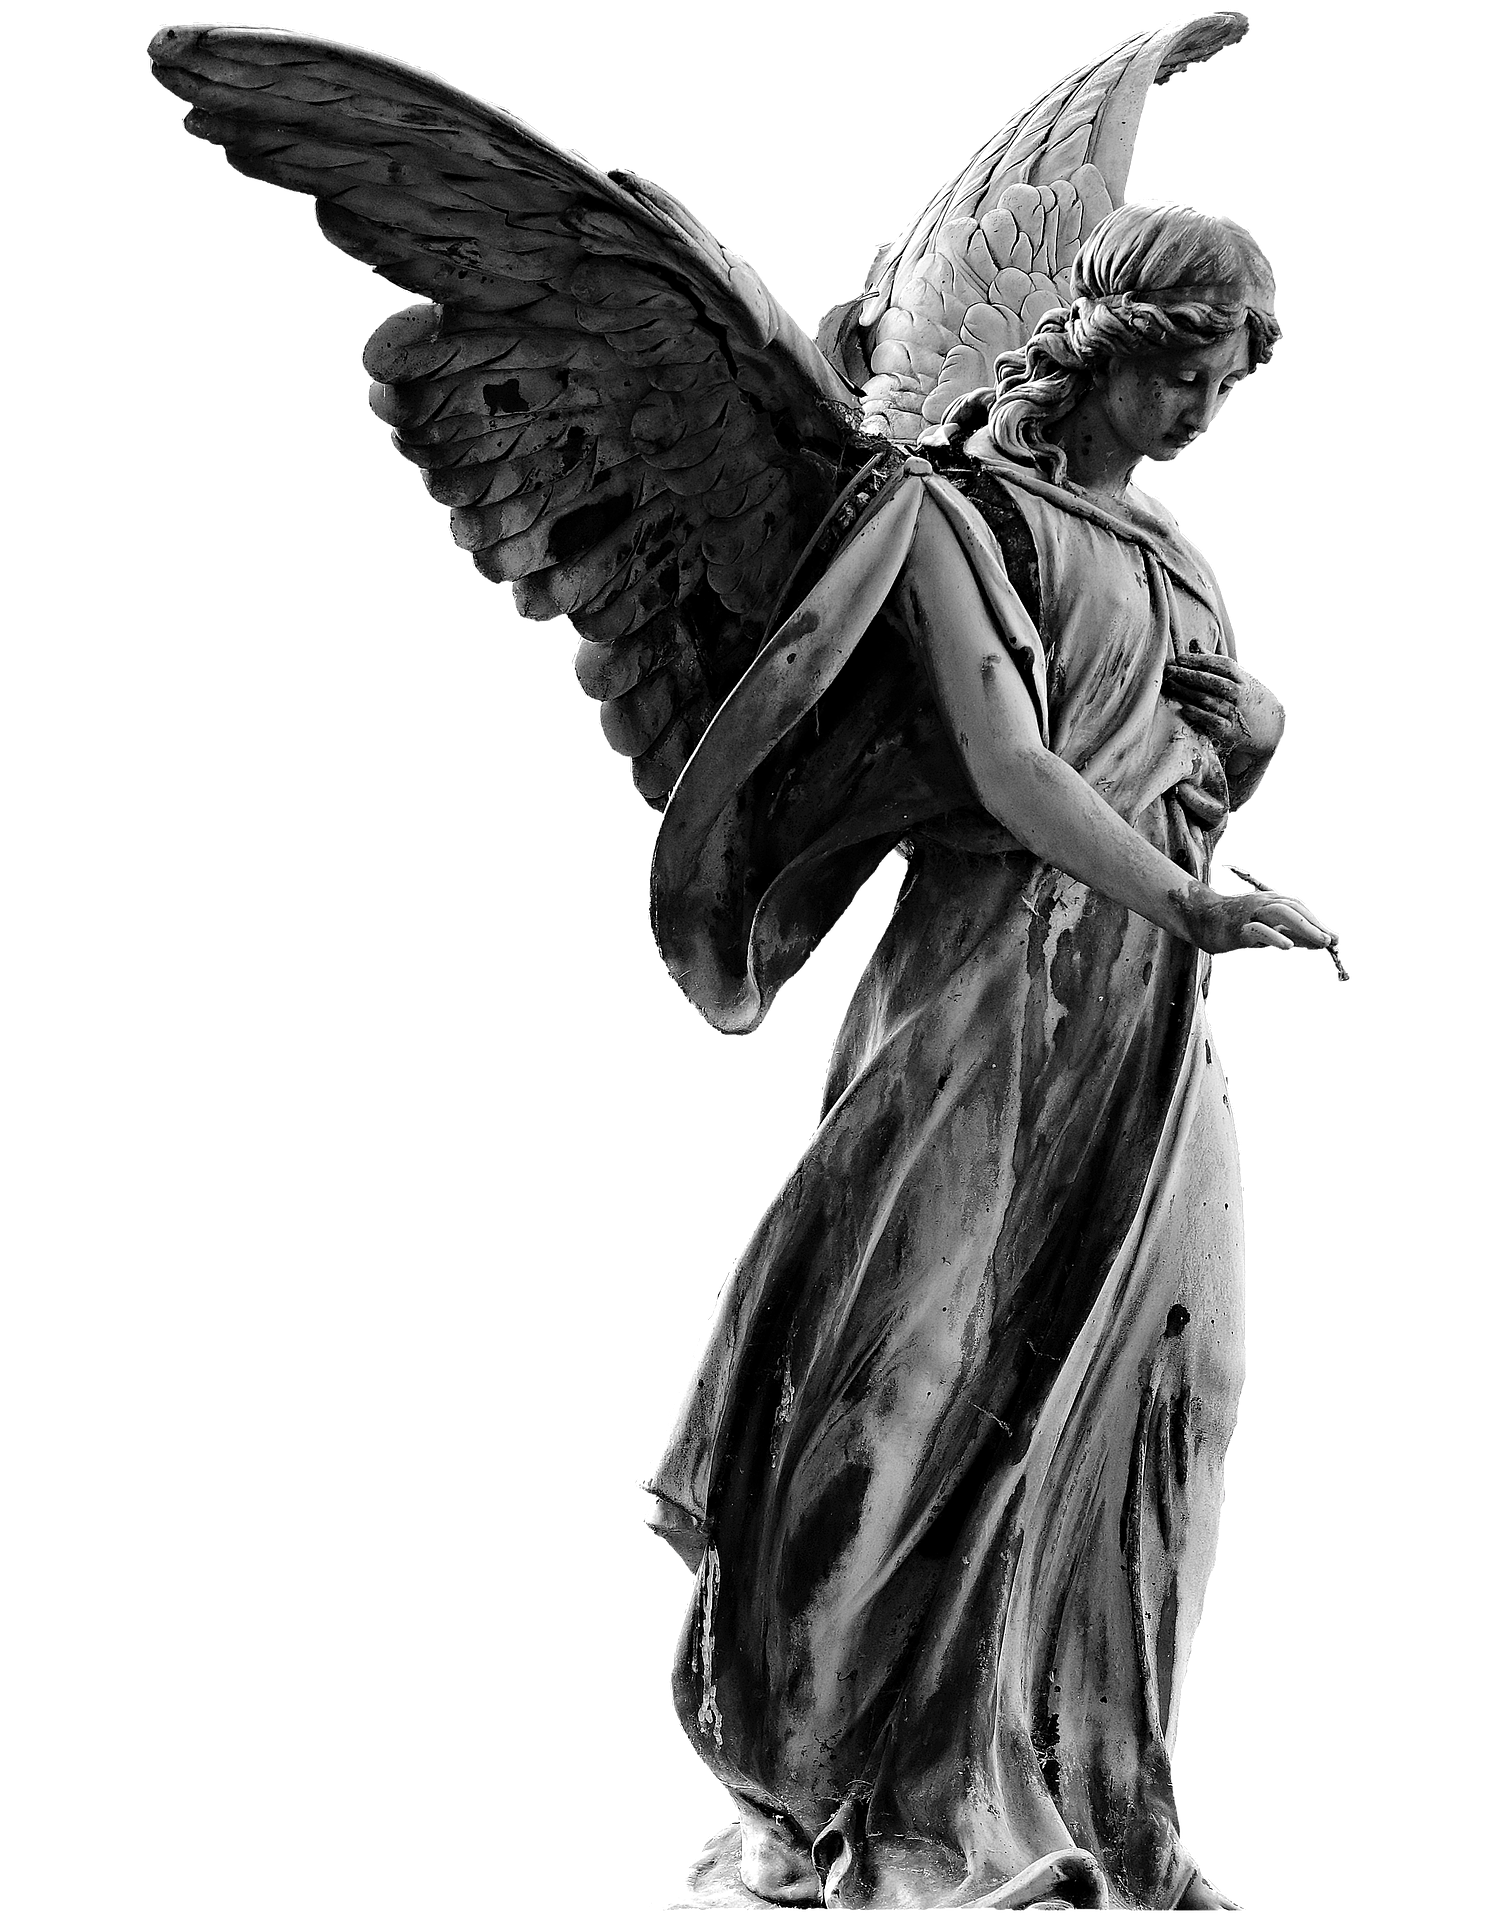 angel-2636961_1920_1.png